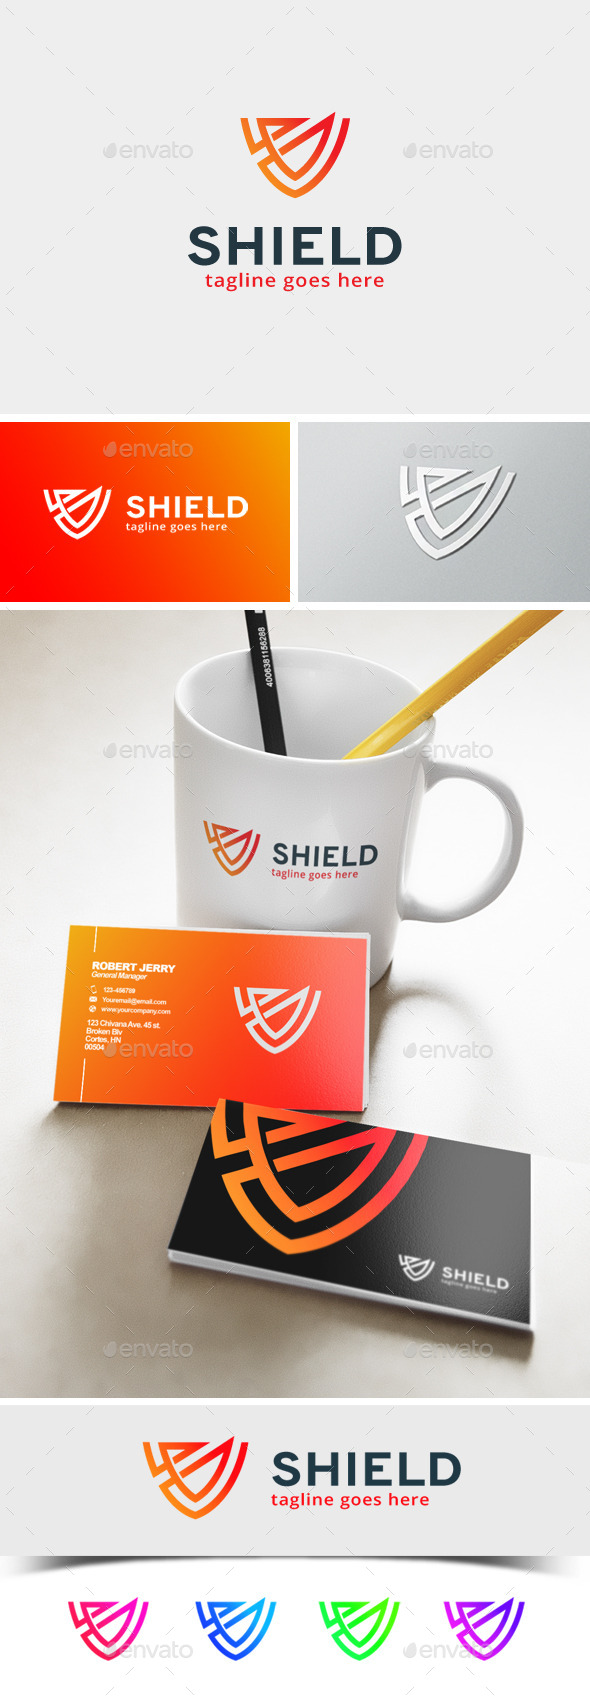 Shield Logo - Abstract Logo Templates